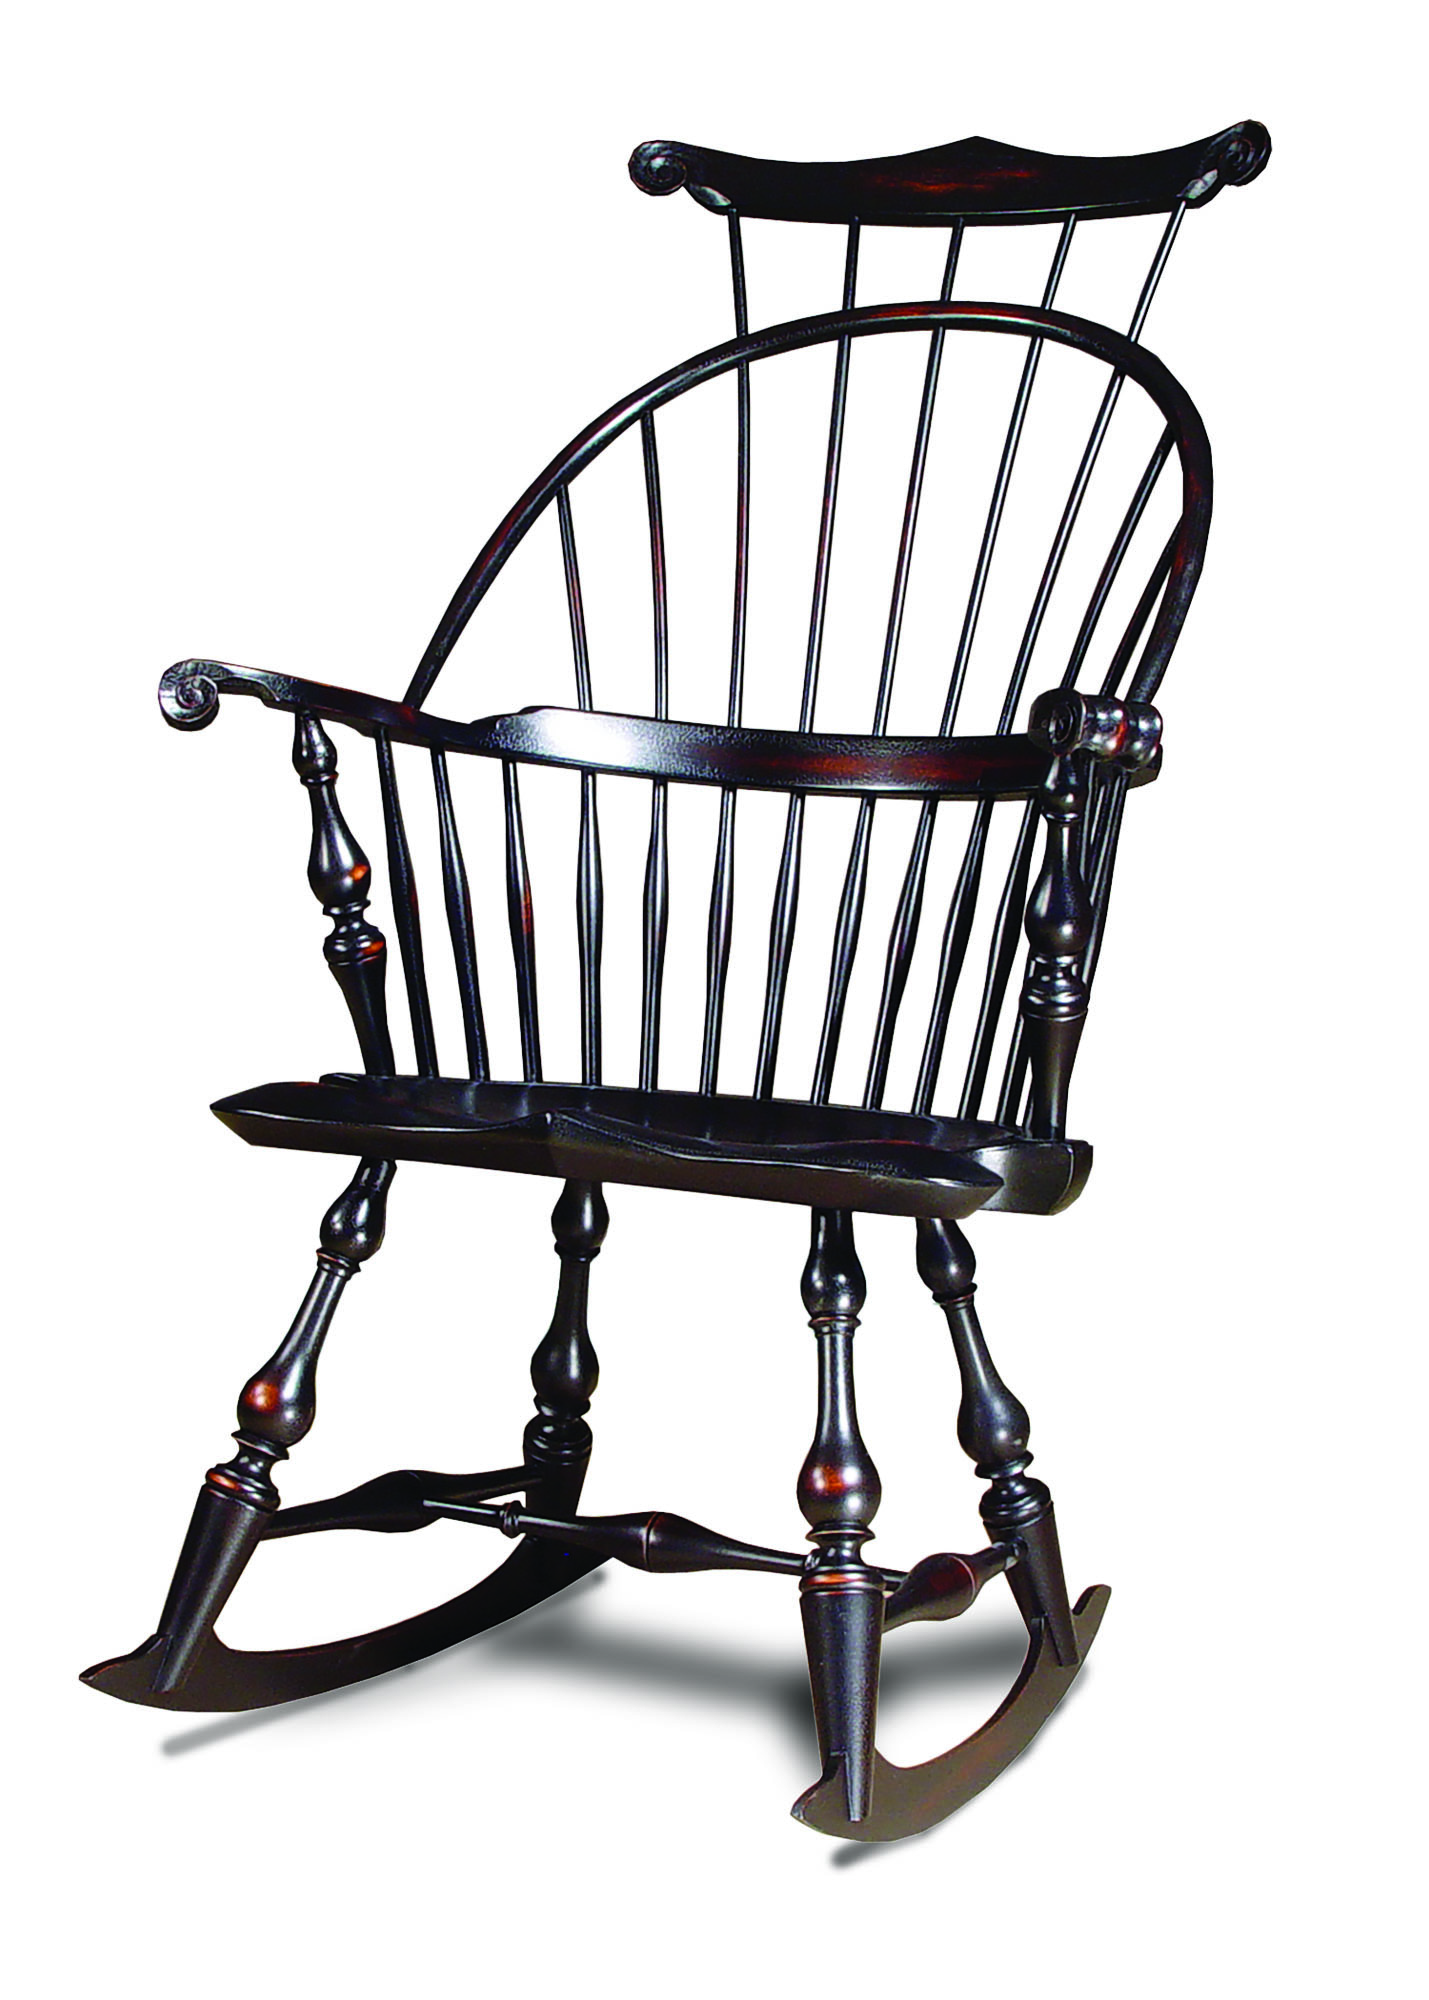 The U0027Masteru0027s Rocking Chairu0027 Is Based On A Windsor Chair Designed Years Ago  By